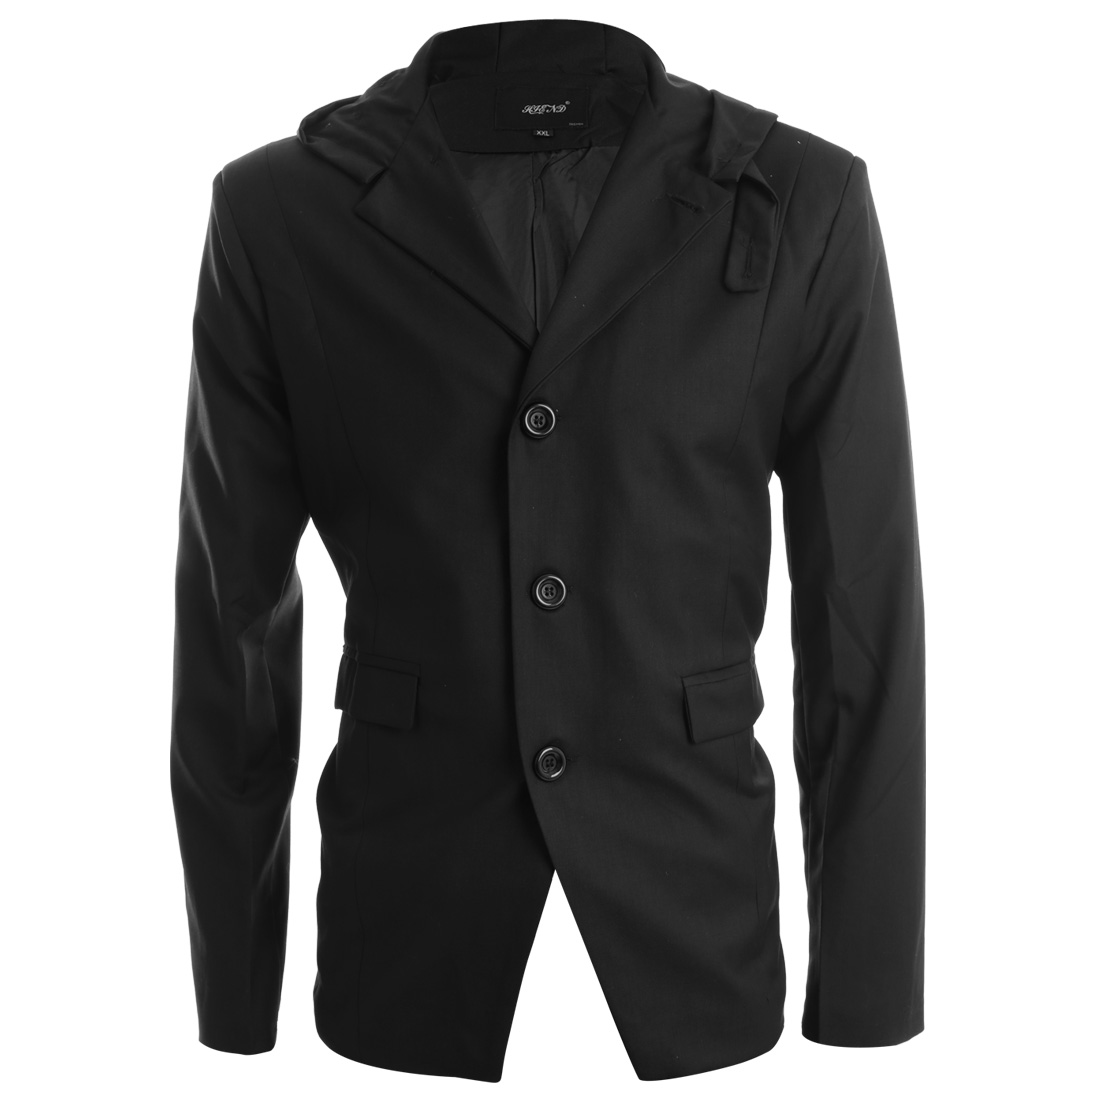 Man Hooded Long-sleeved Single Breasted Pockets Decor Black Jacket M